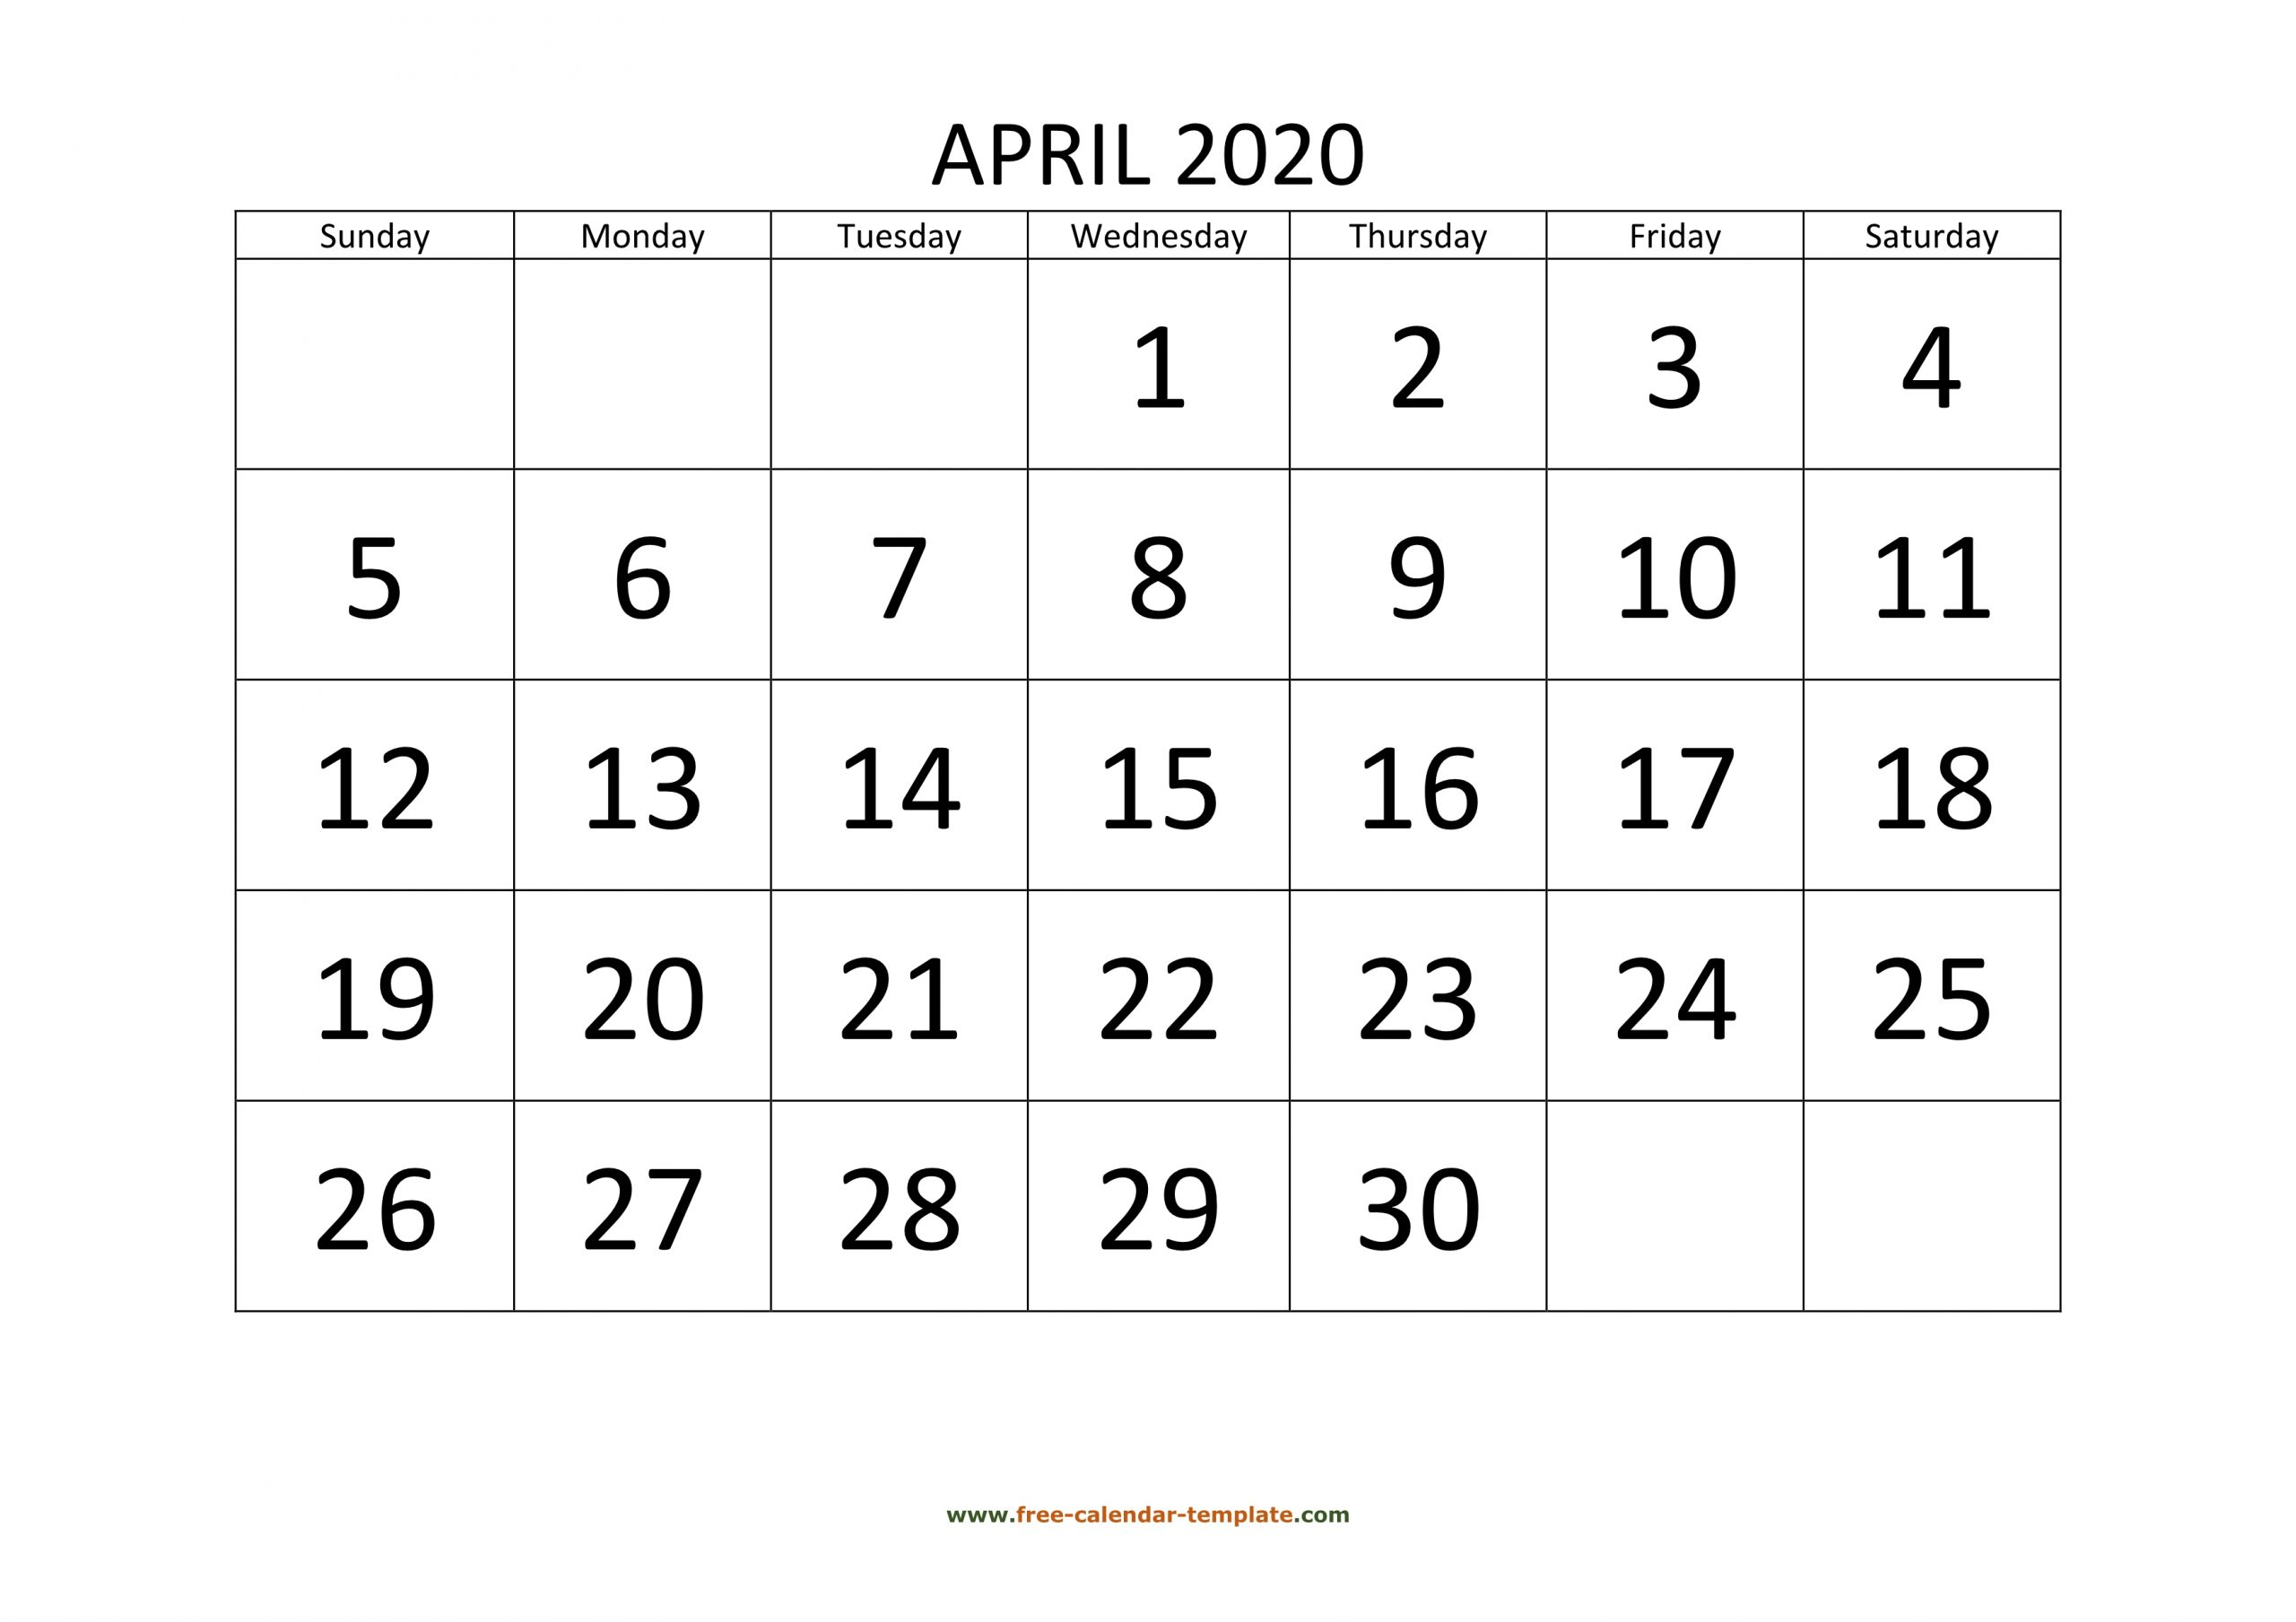 April 2020 Calendar Designed With Large Font (Horizontal